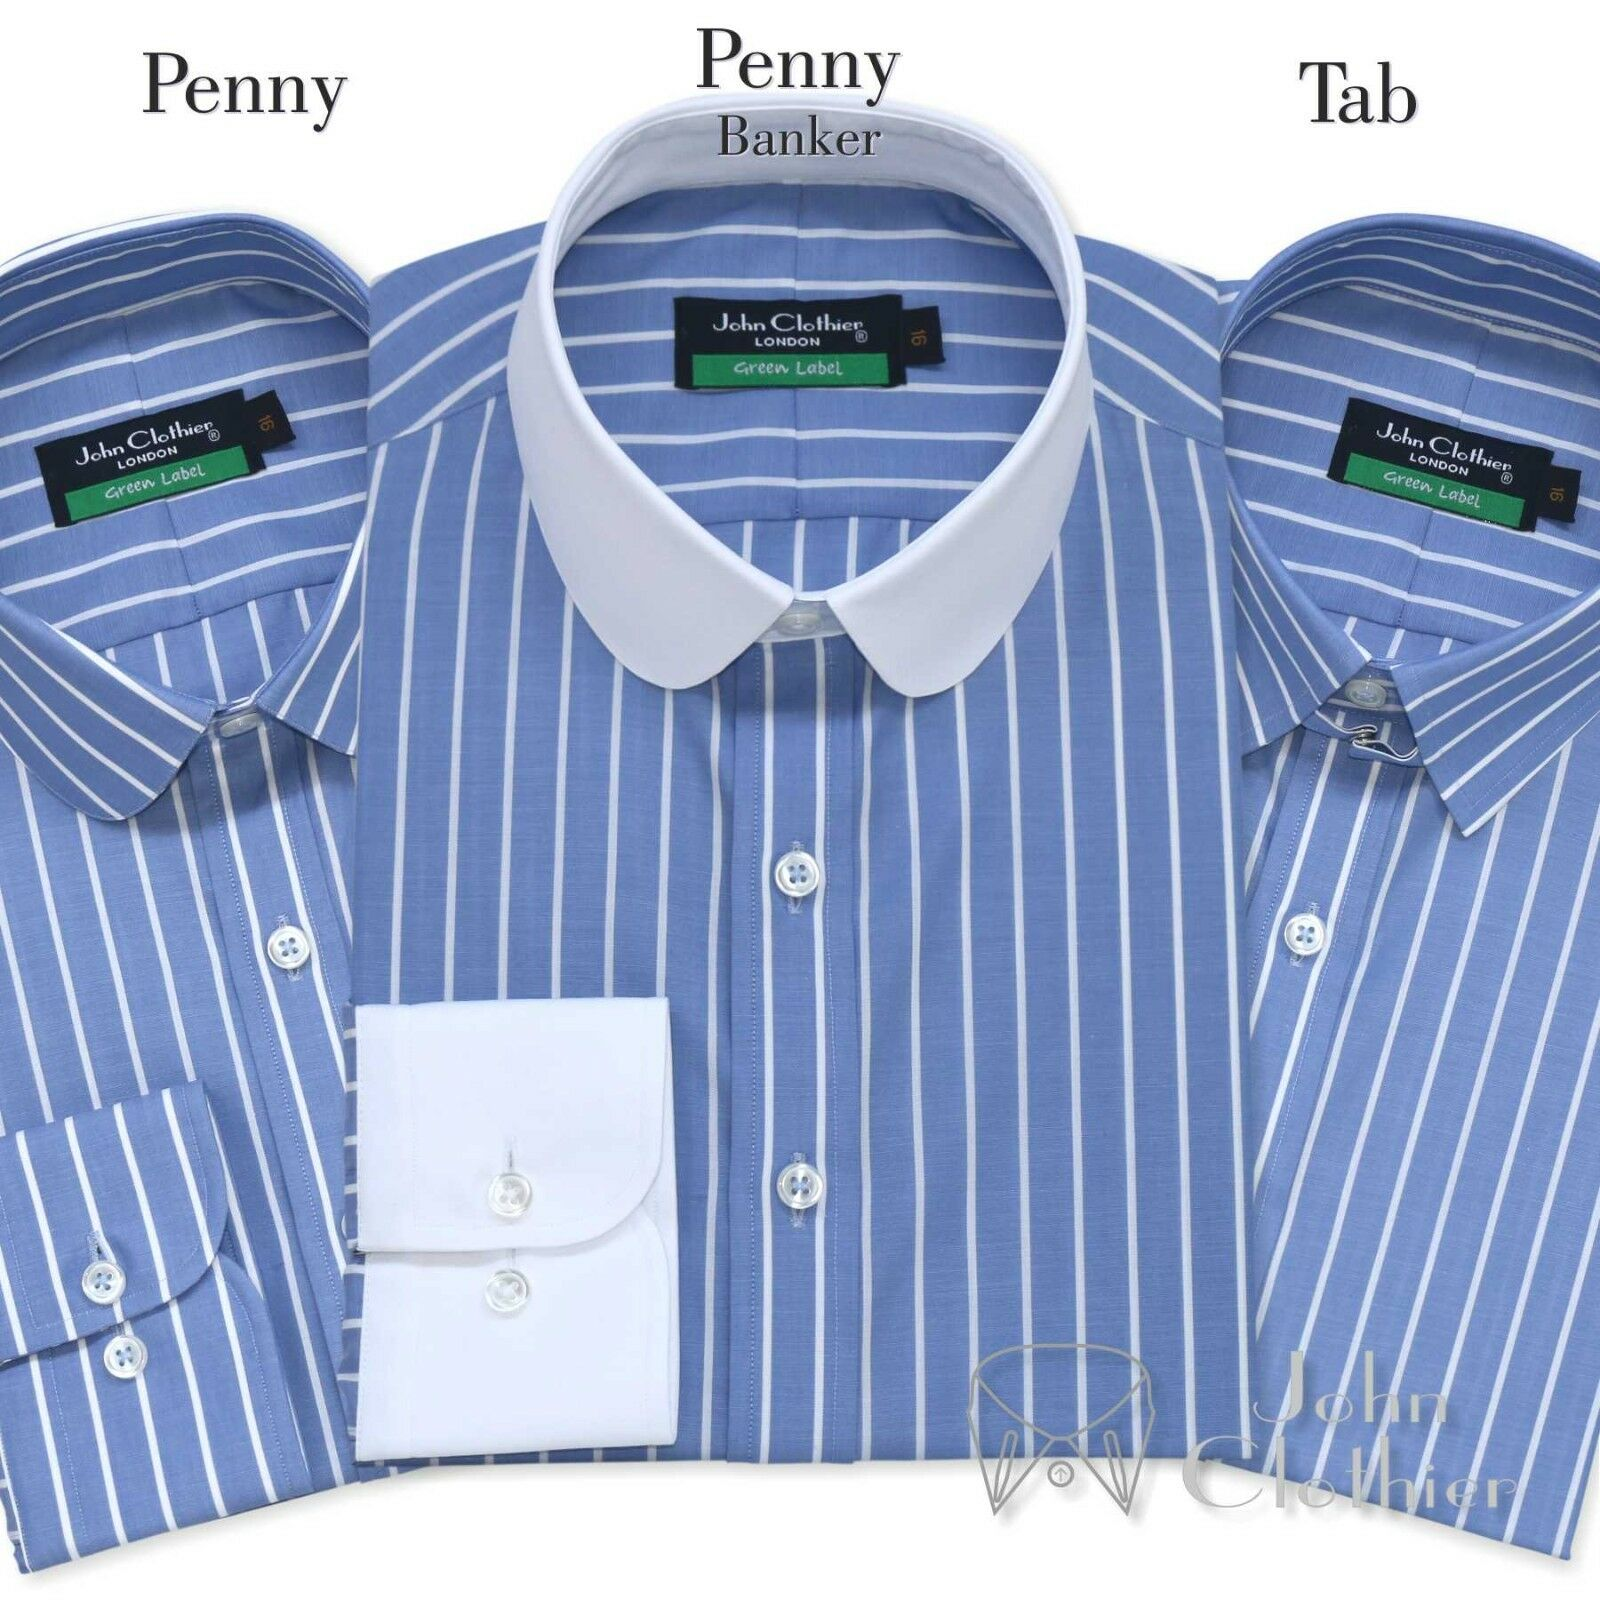 Herren Cotton shirt Penny collar Tab collar Blau Weiß stripes Club Loop for Gents